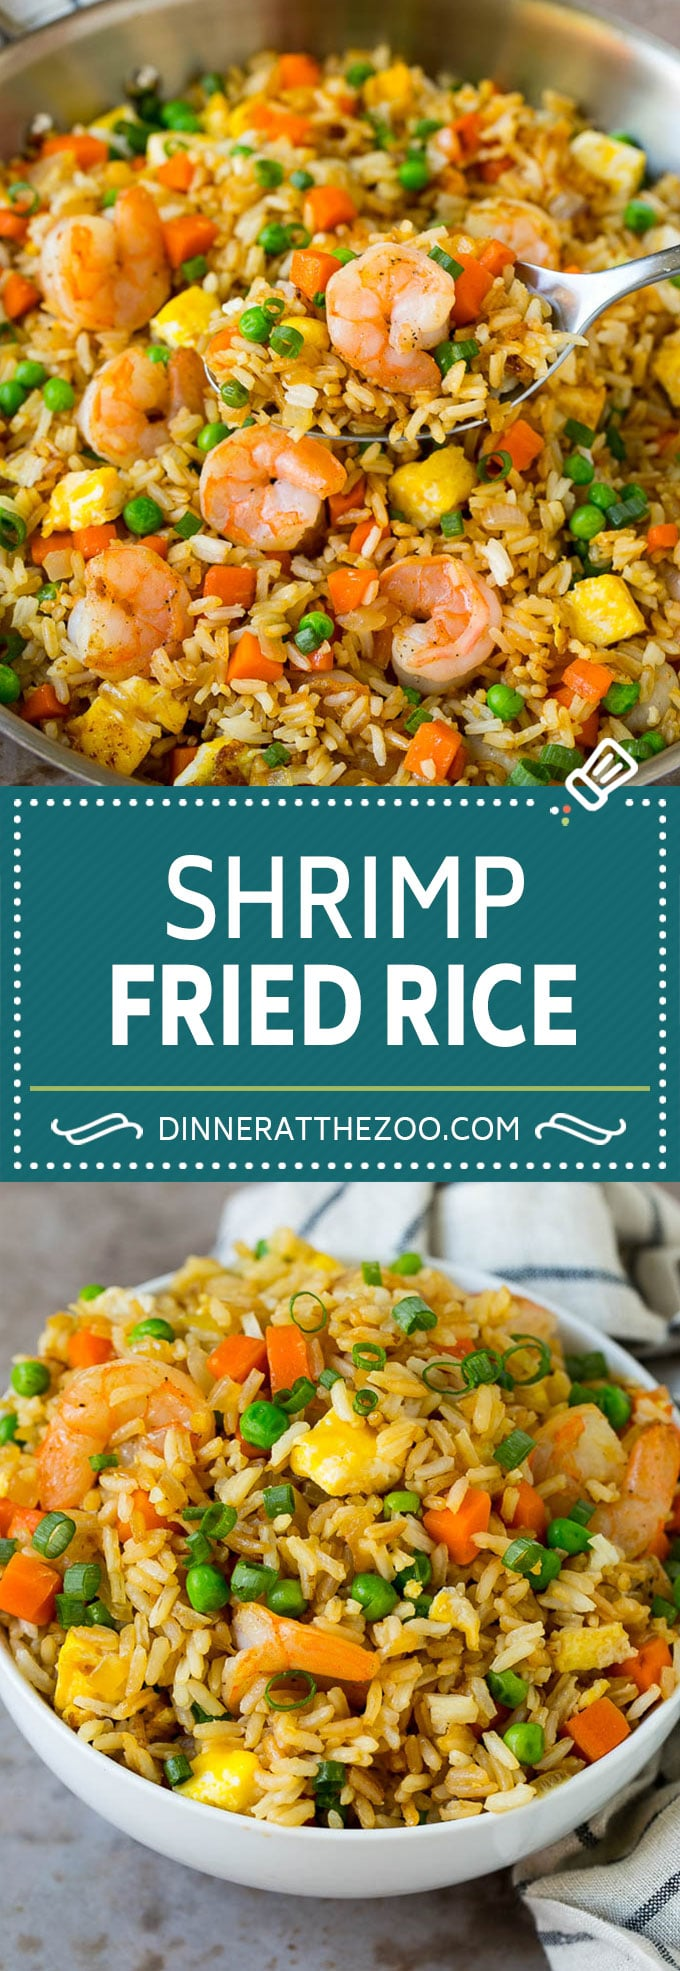 Shrimp Fried Rice Recipe | Chinese Fried Rice #rice #shrimp #peas #carrots #sidedish #dinner #dinneratthezoo